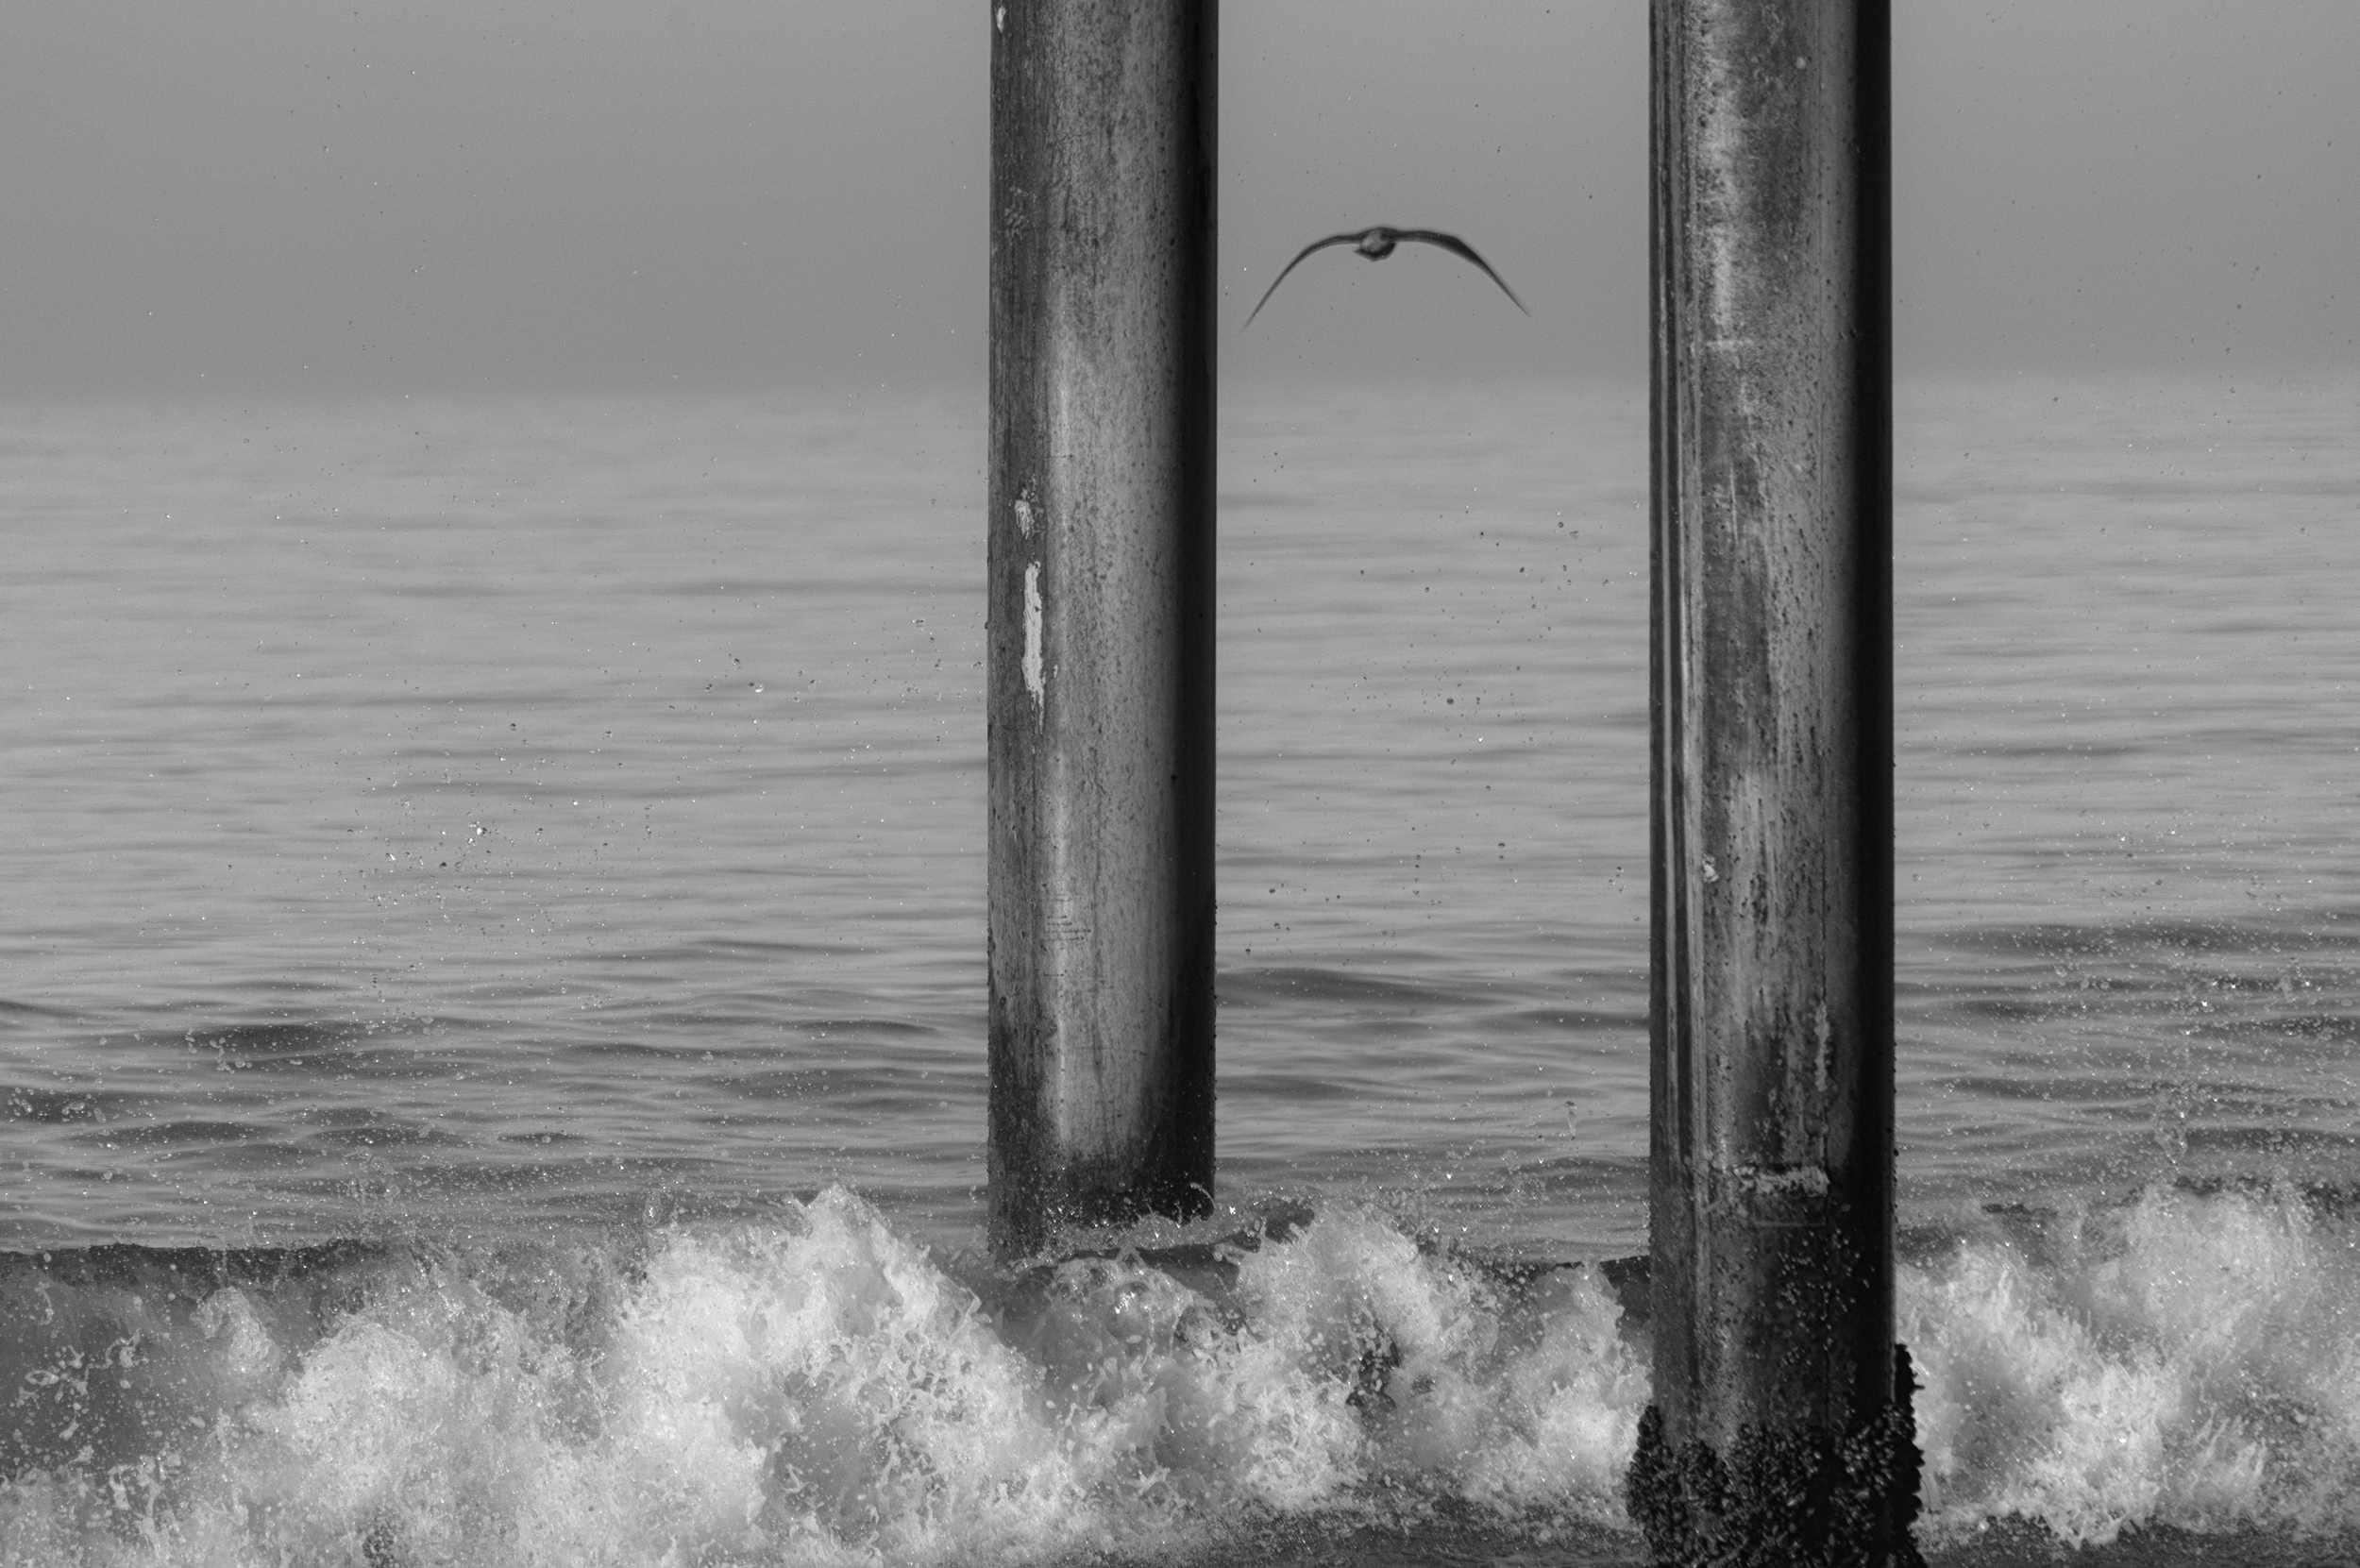 Santa Monica pier early in the morning